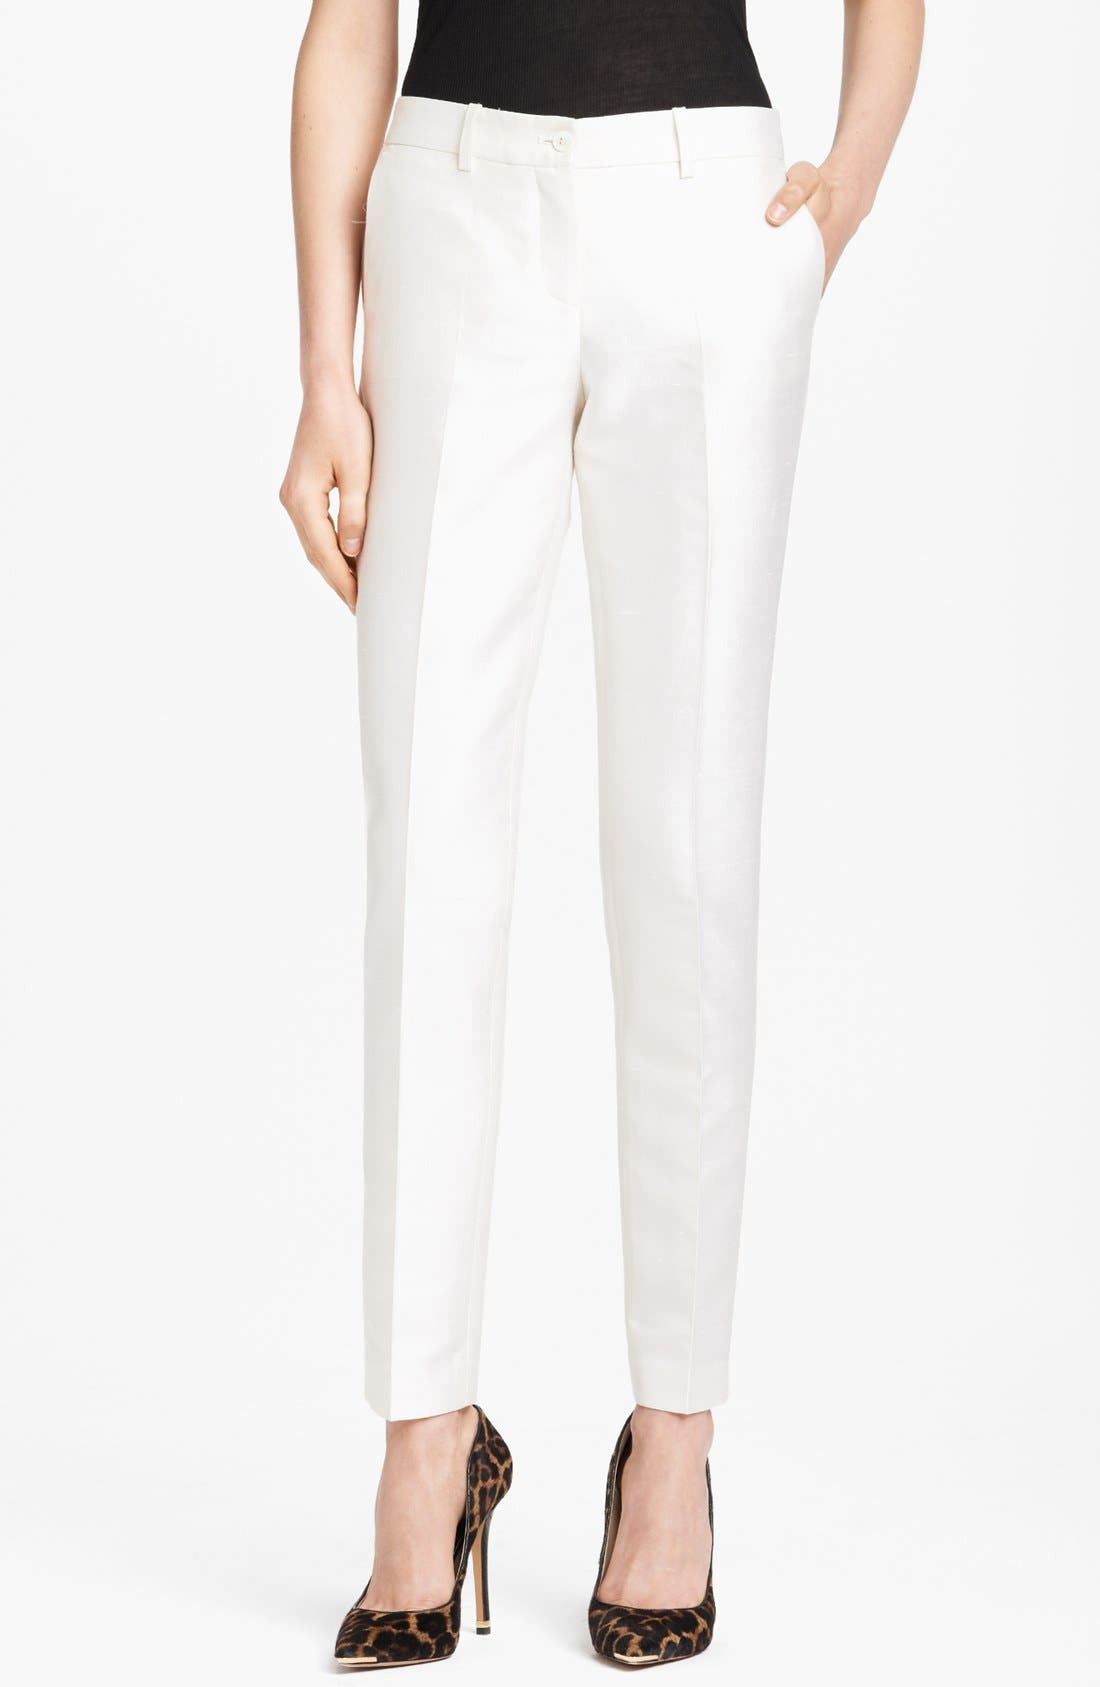 Alternate Image 1 Selected - SHANTUNG SAMANTHA PANT